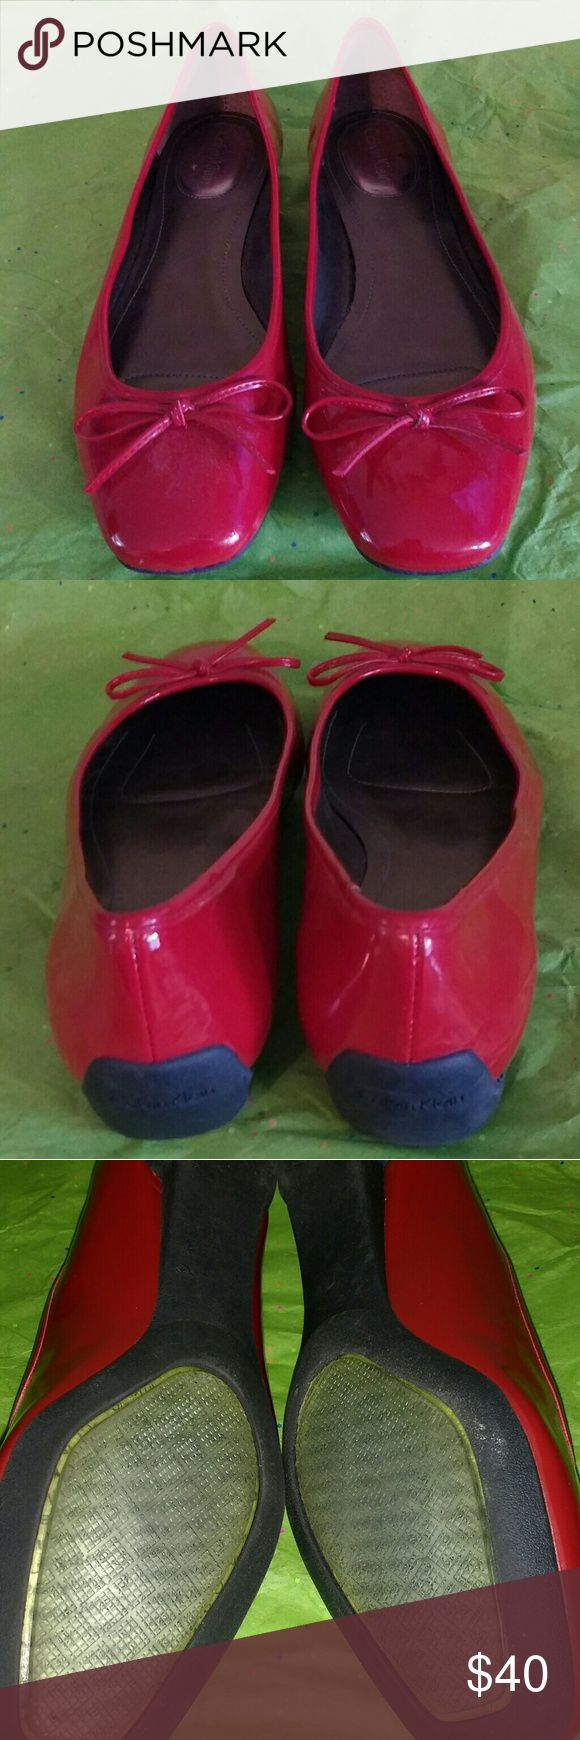 Calvin Klein Shoes Red Patent Leather with cushion inside shoe & comfort sole Calvin Klein Shoes Flats & Loafers